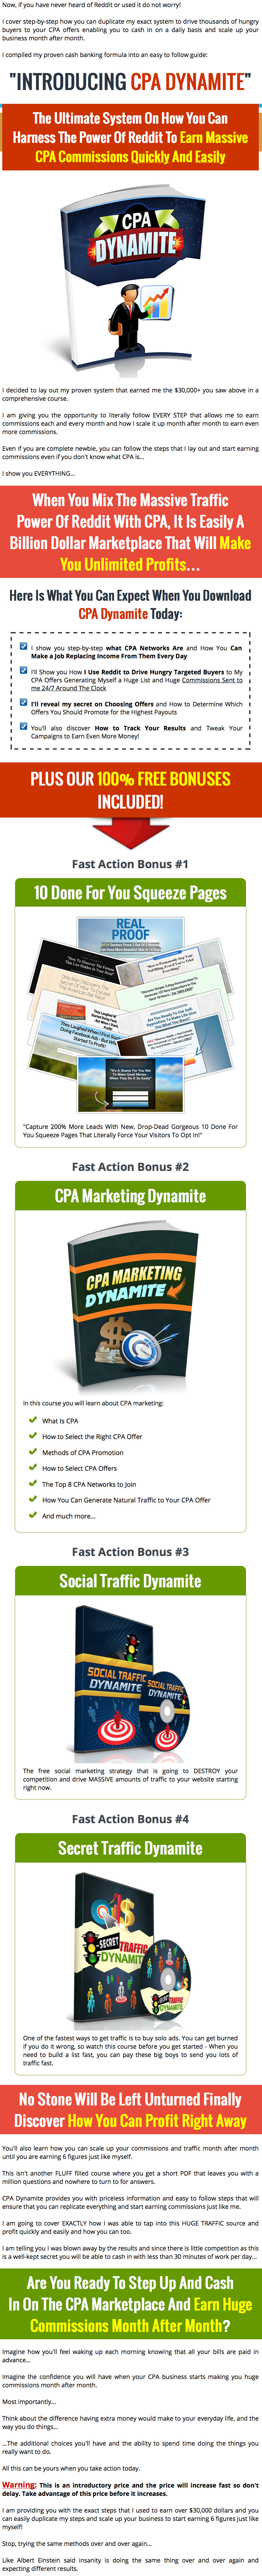 CPA Dynamite Gold Package